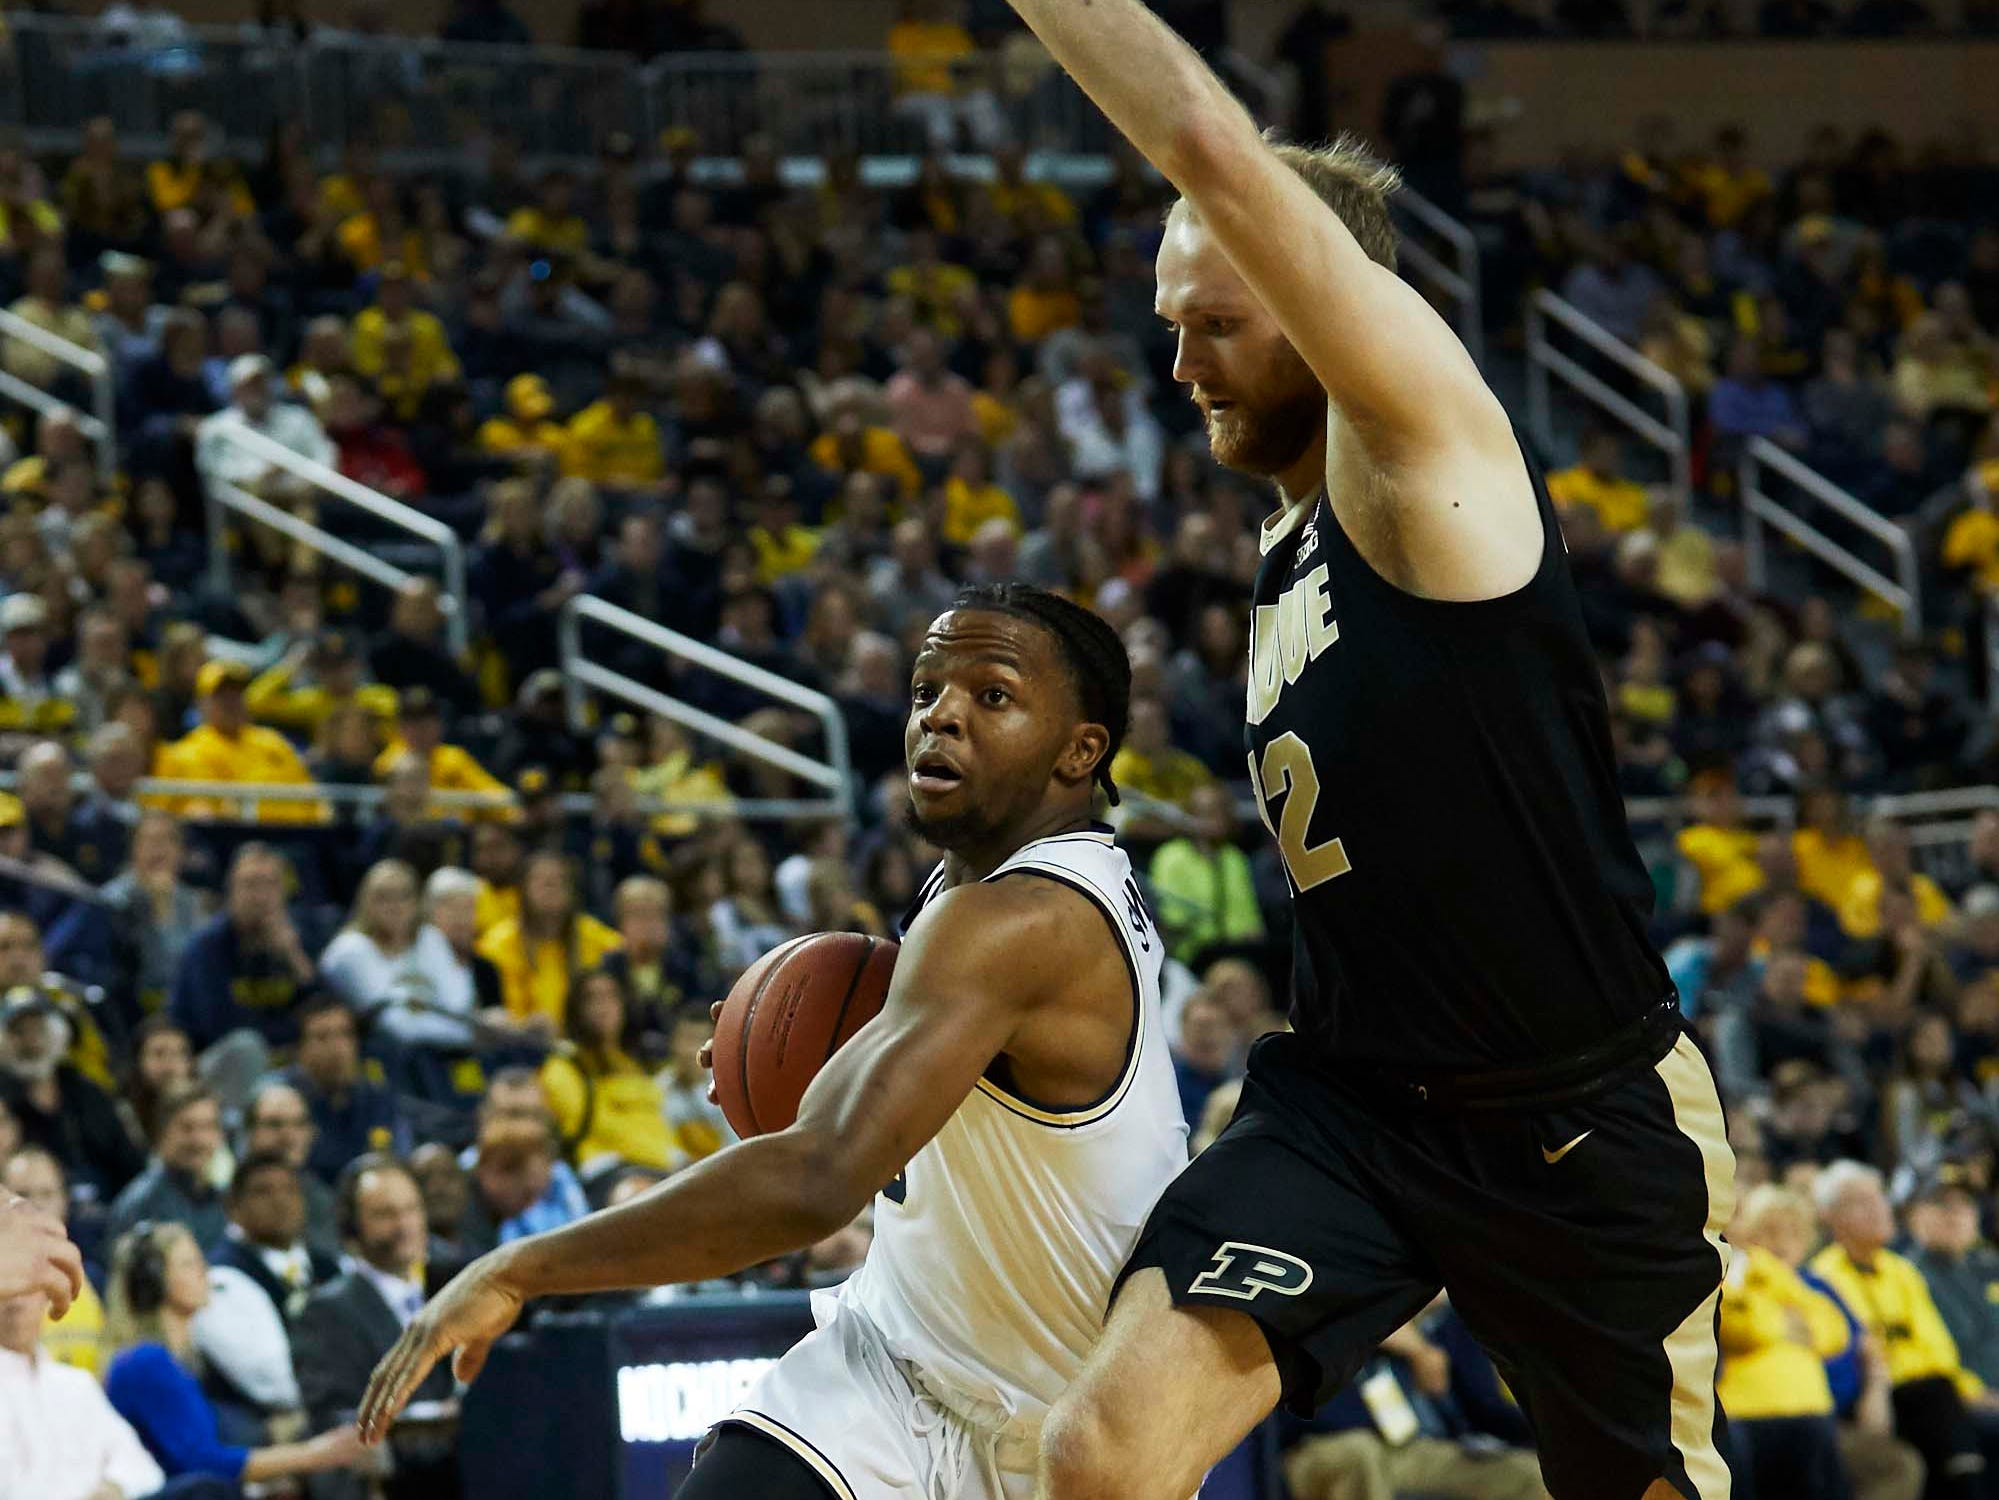 Dec 1, 2018; Ann Arbor, MI, USA; Michigan Wolverines guard Zavier Simpson (3) dribbles defended by Purdue Boilermakers forward Evan Boudreaux (12) in the first half at Crisler Center. Mandatory Credit: Rick Osentoski-USA TODAY Sports